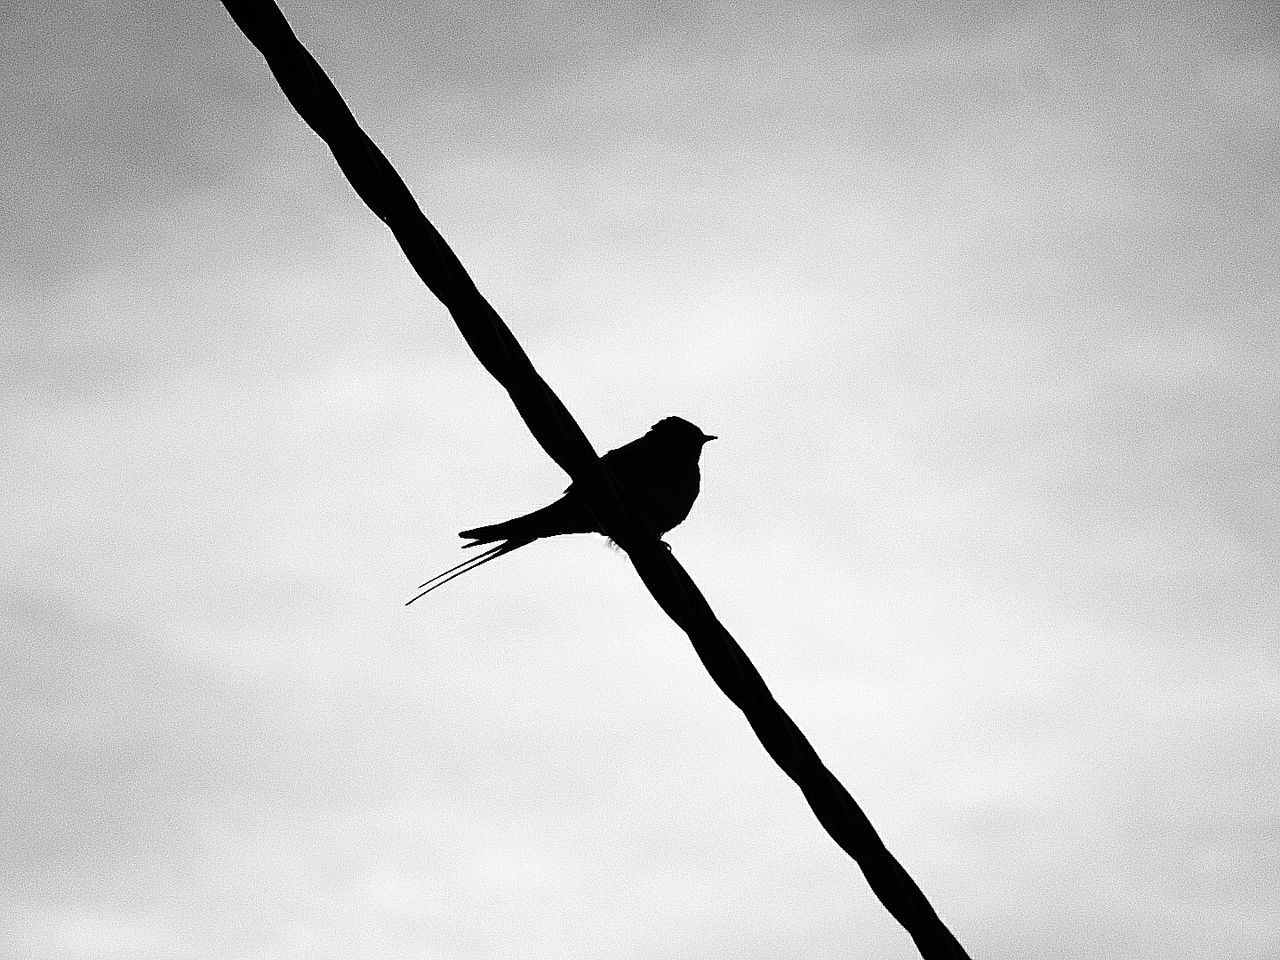 bird, one animal, animal themes, animals in the wild, low angle view, animal wildlife, outdoors, day, silhouette, nature, no people, spread wings, sky, flying